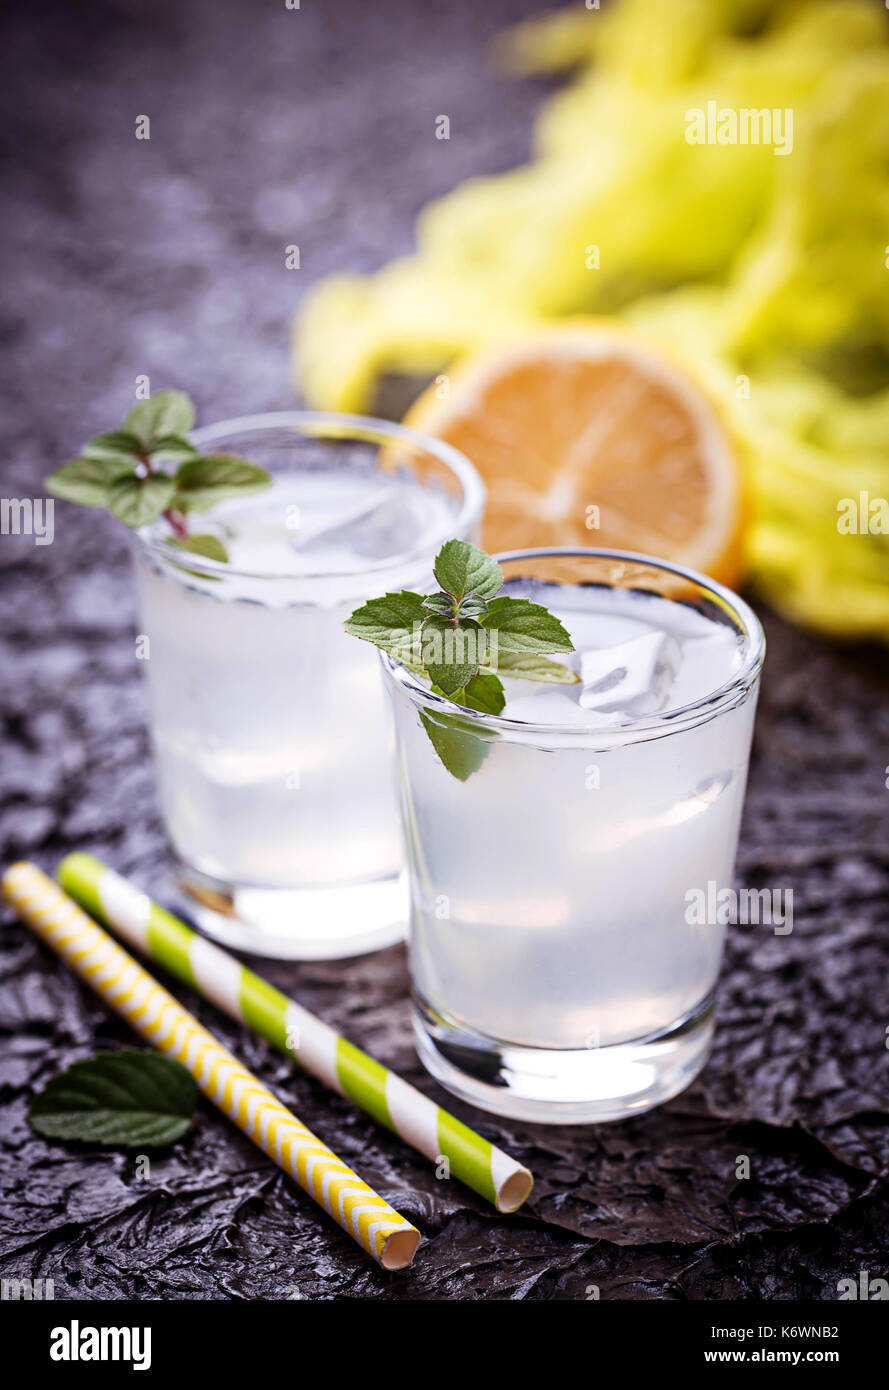 Cold drink with lemon and mint - Stock Image